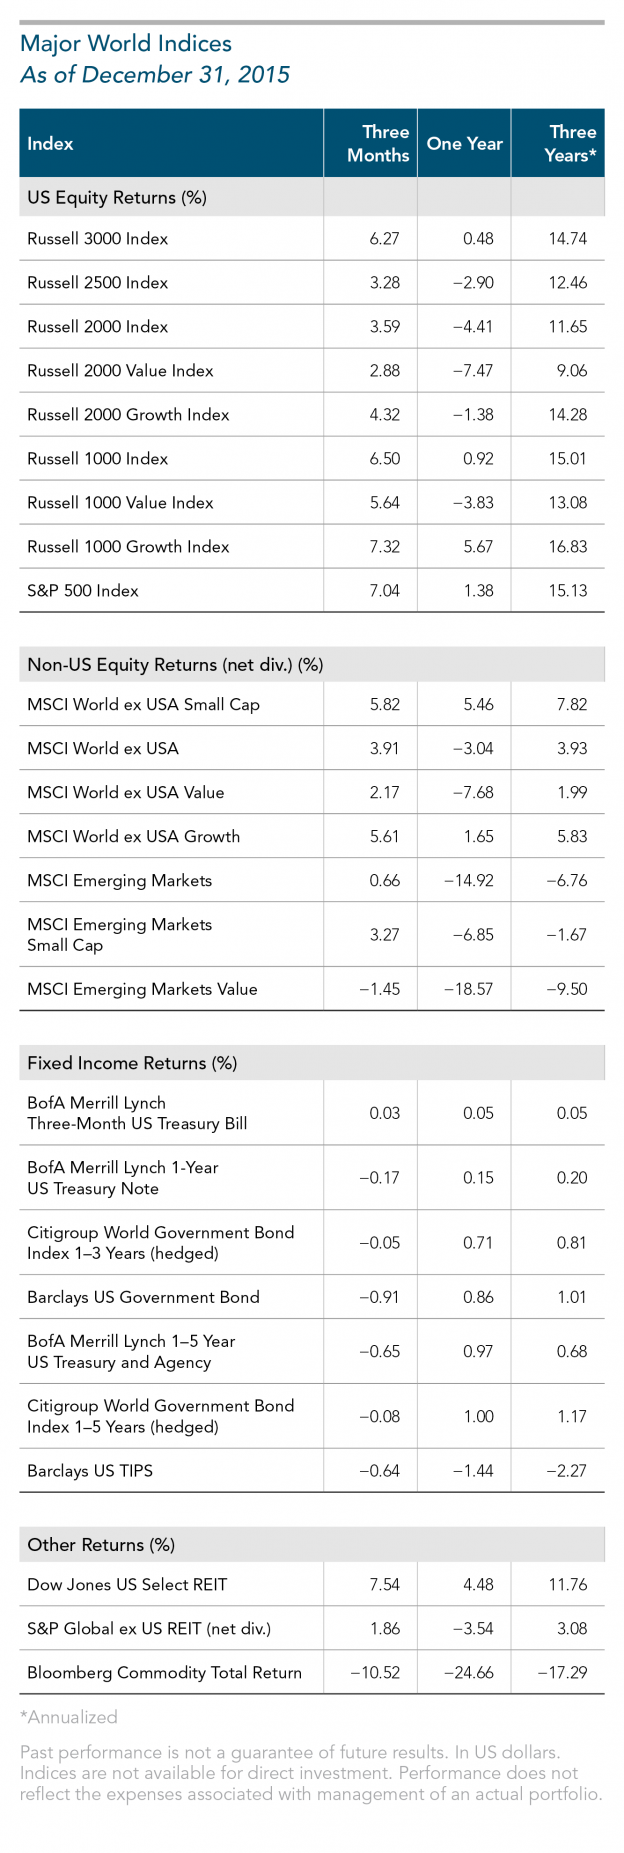 Major world indices 2015